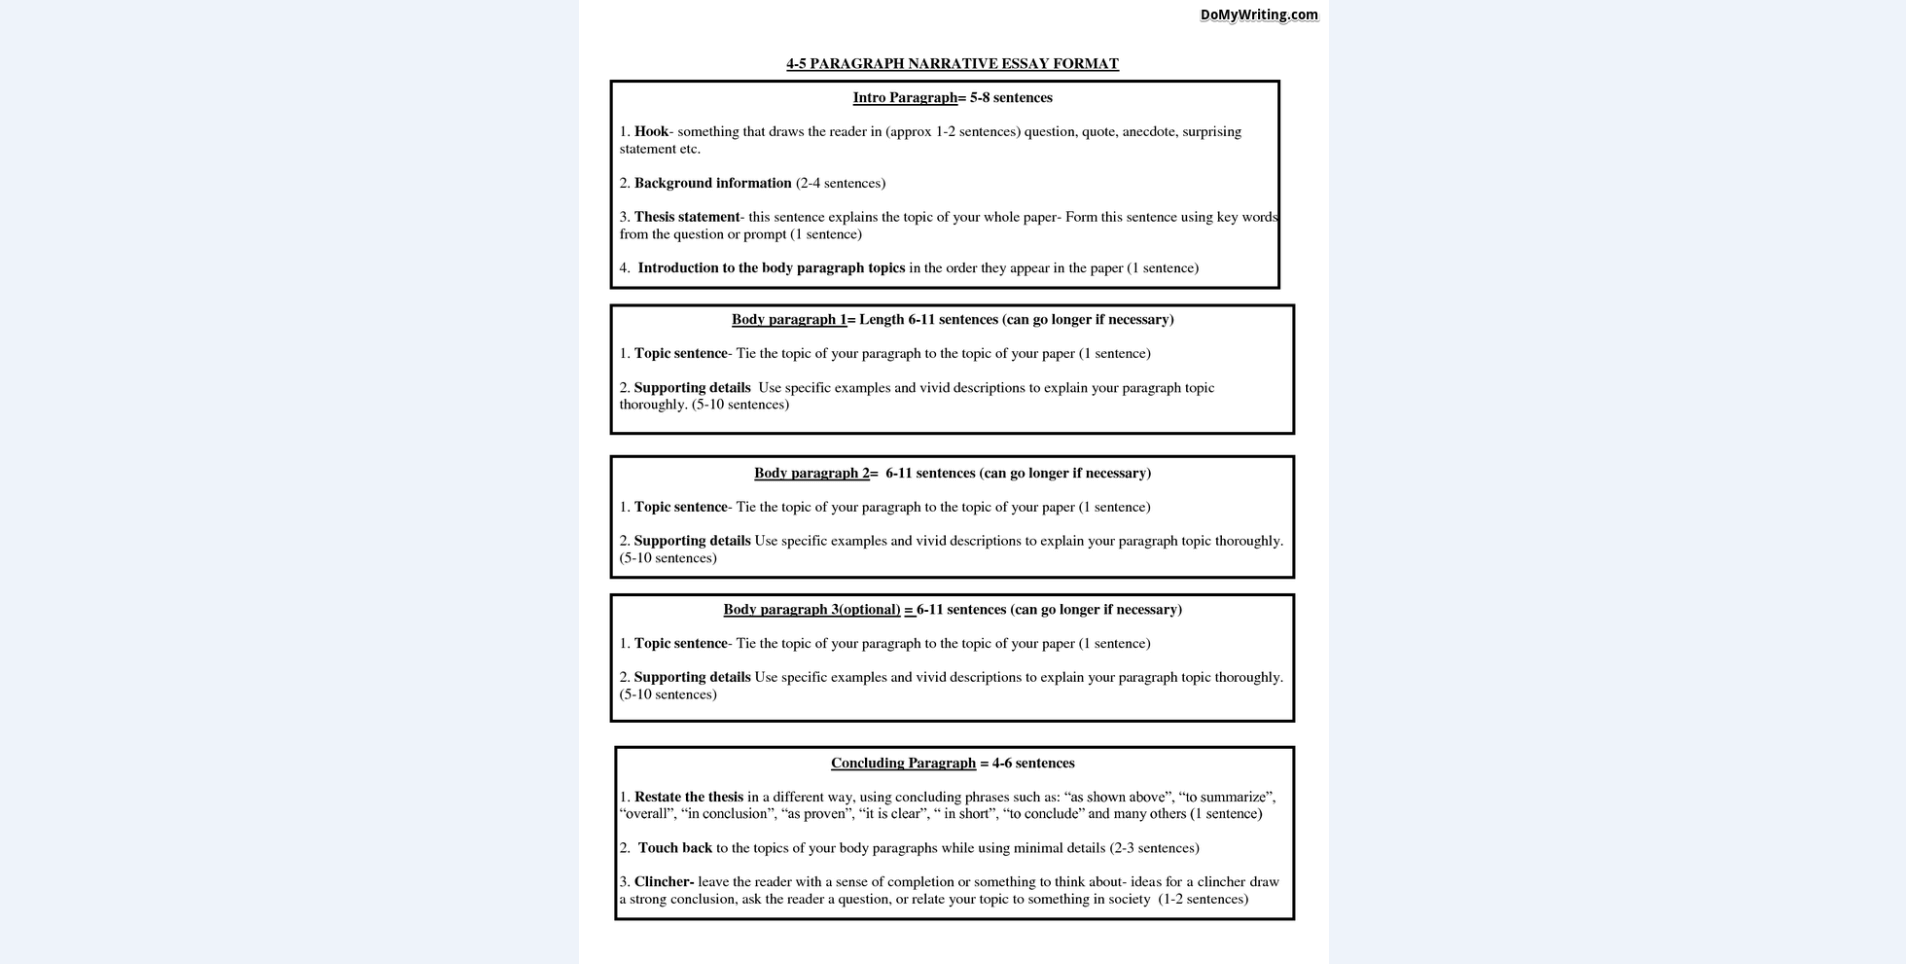 008 Narrative Essay Format Exceptional Rubric Outline Template Pdf Sample Full